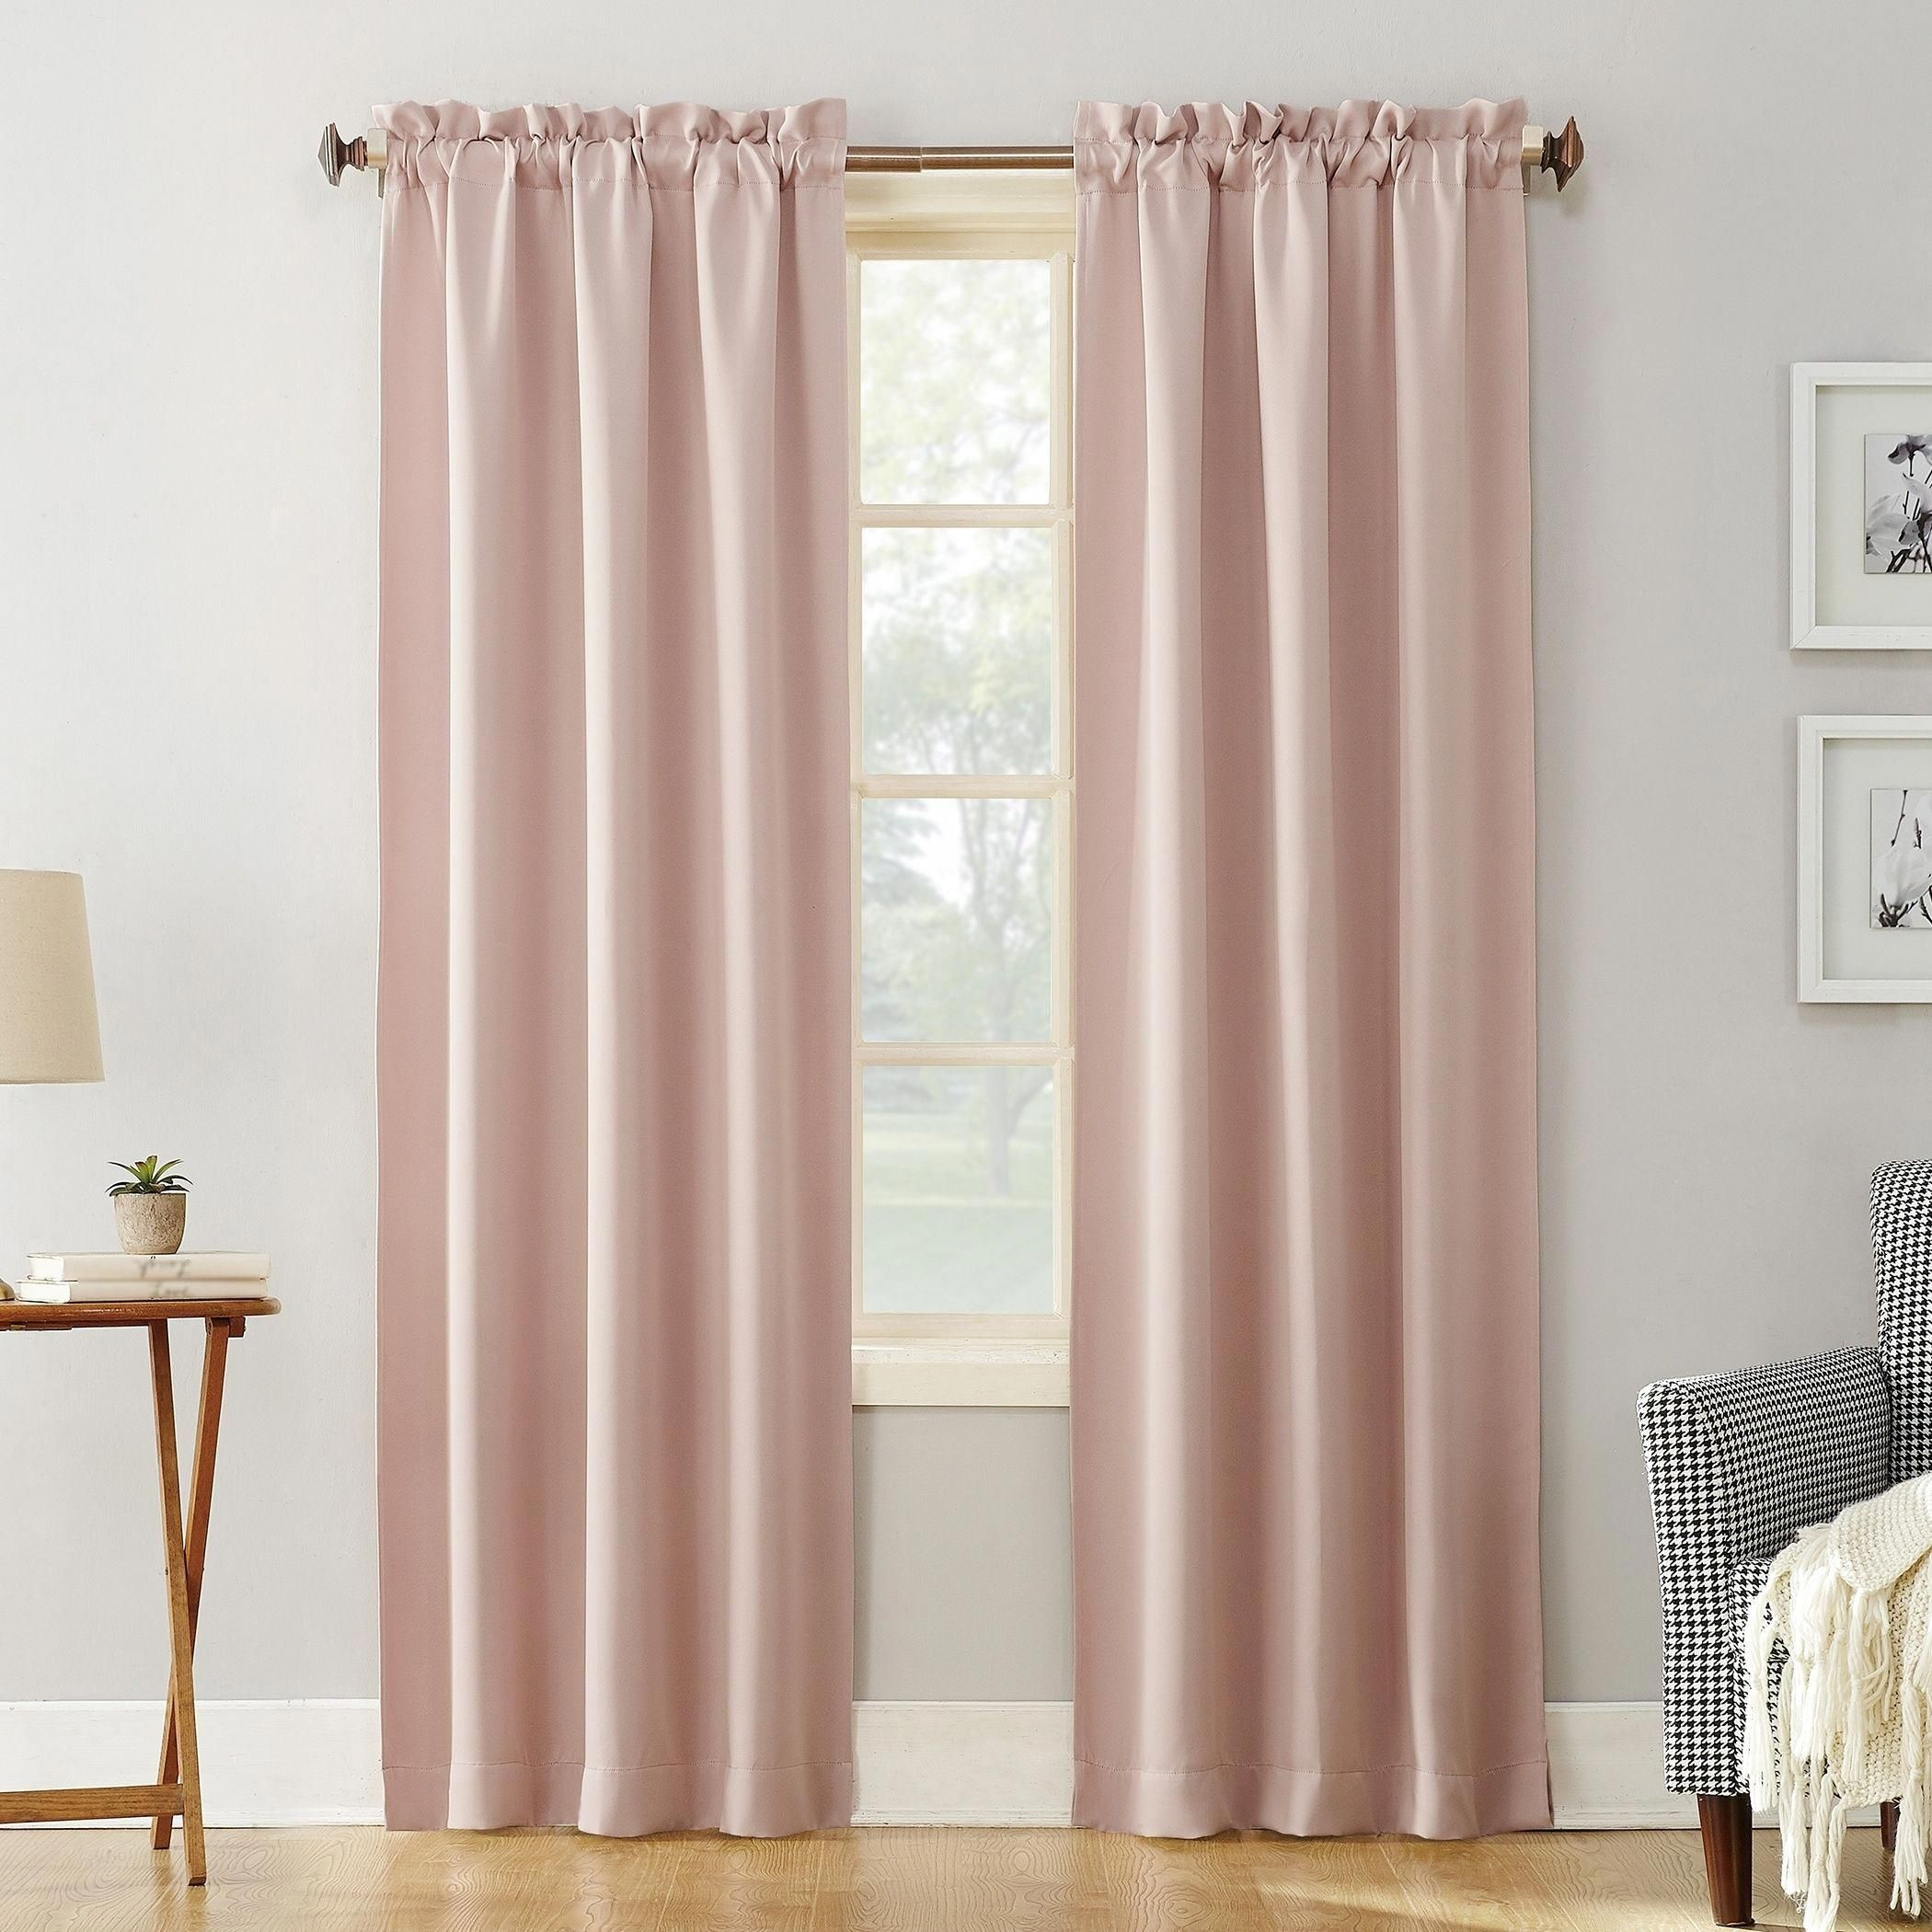 Best 3d Scenery Blackout Curtains Online With Images Rod Pocket Curtain Panels Curtains Blackout Panels